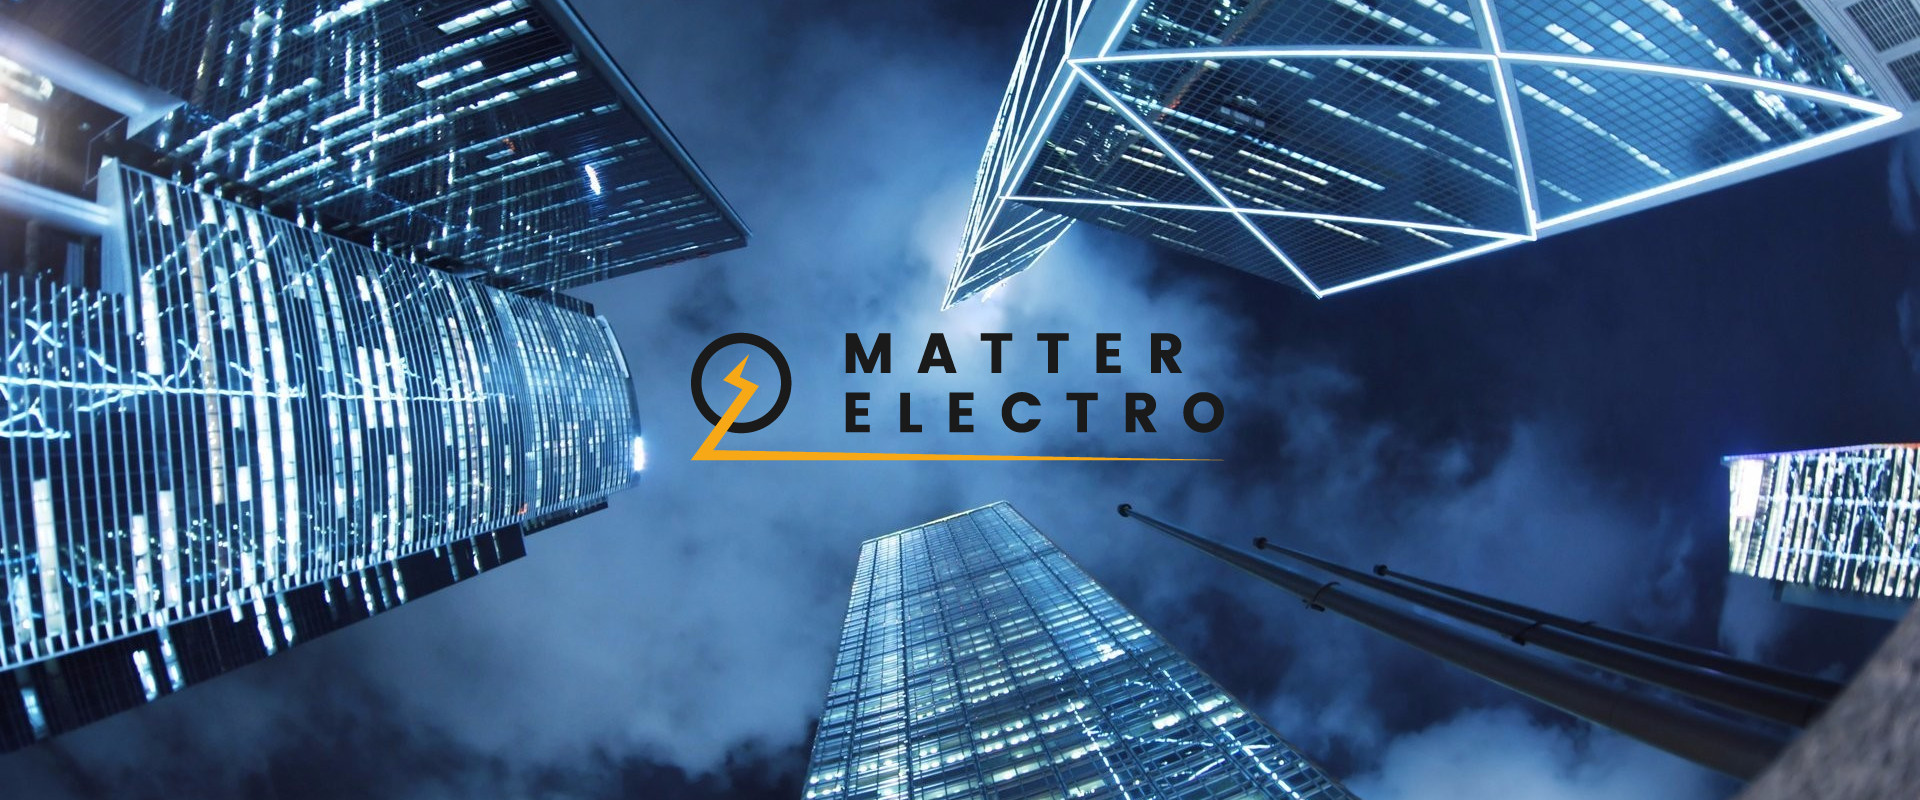 Matter Electro - electrical company